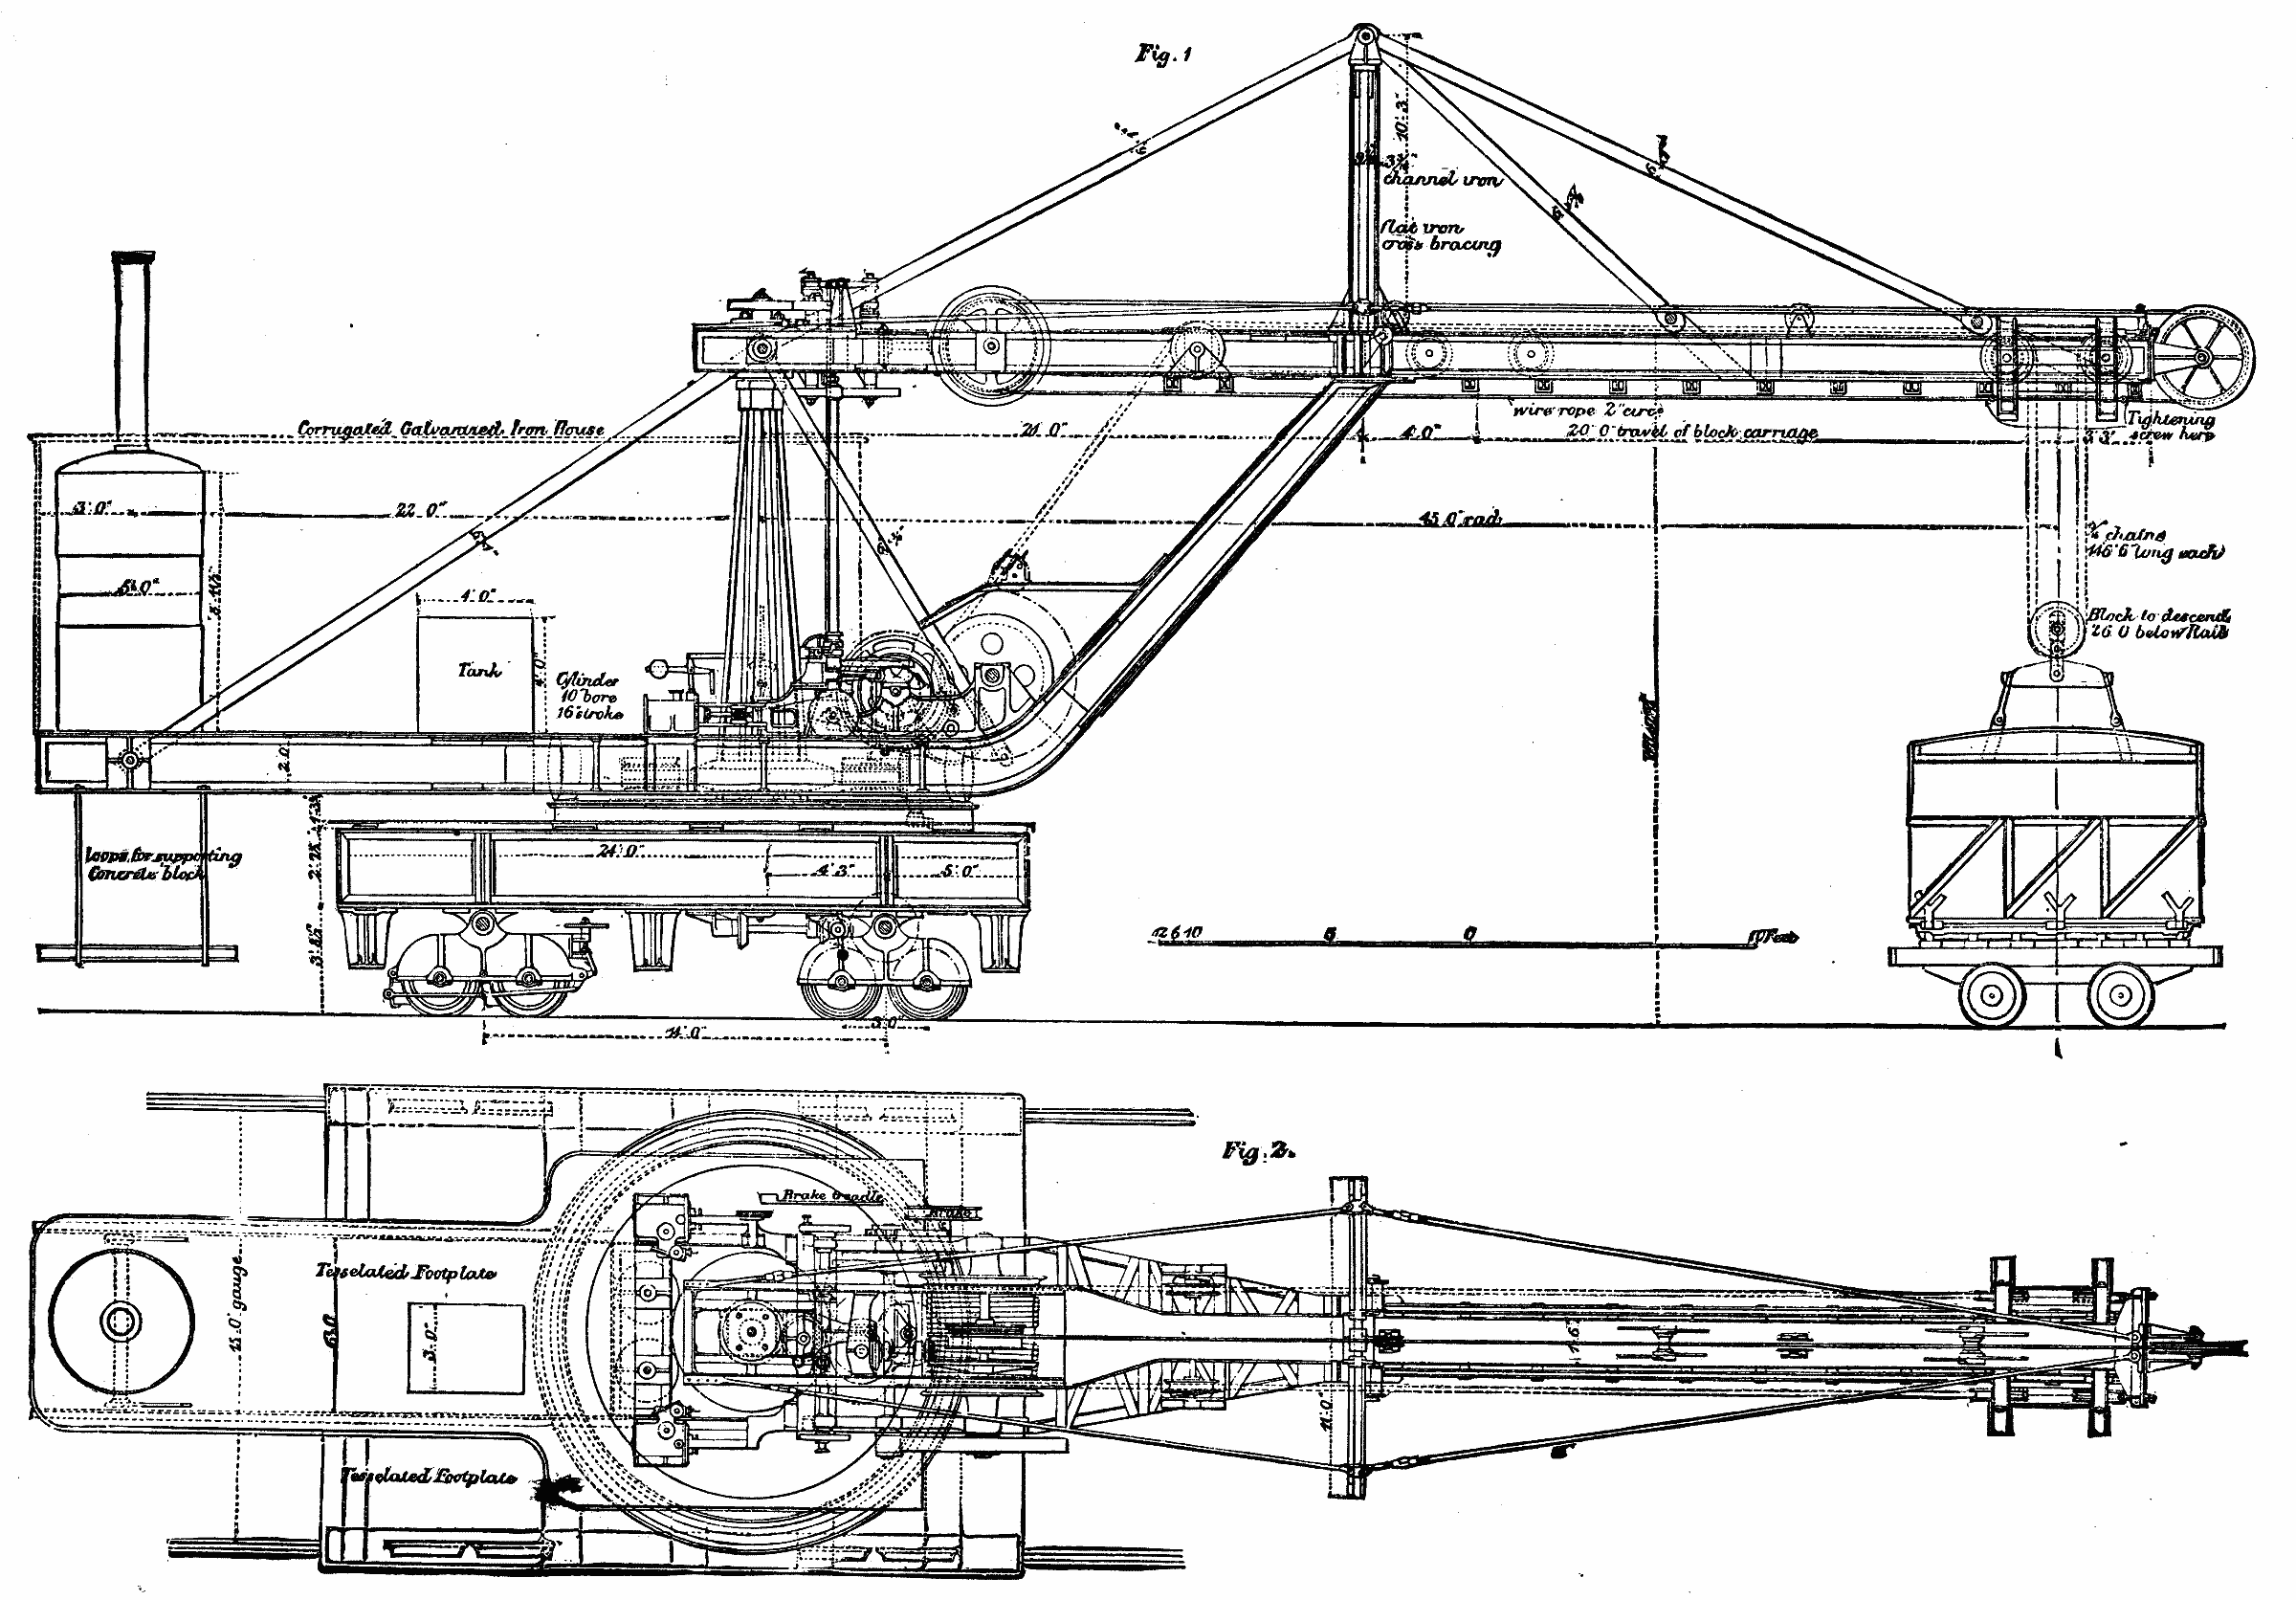 hiab crane diagram engine diagram and wiring diagram telsta boom truck wiring diagram palfinger boom wiring diagram